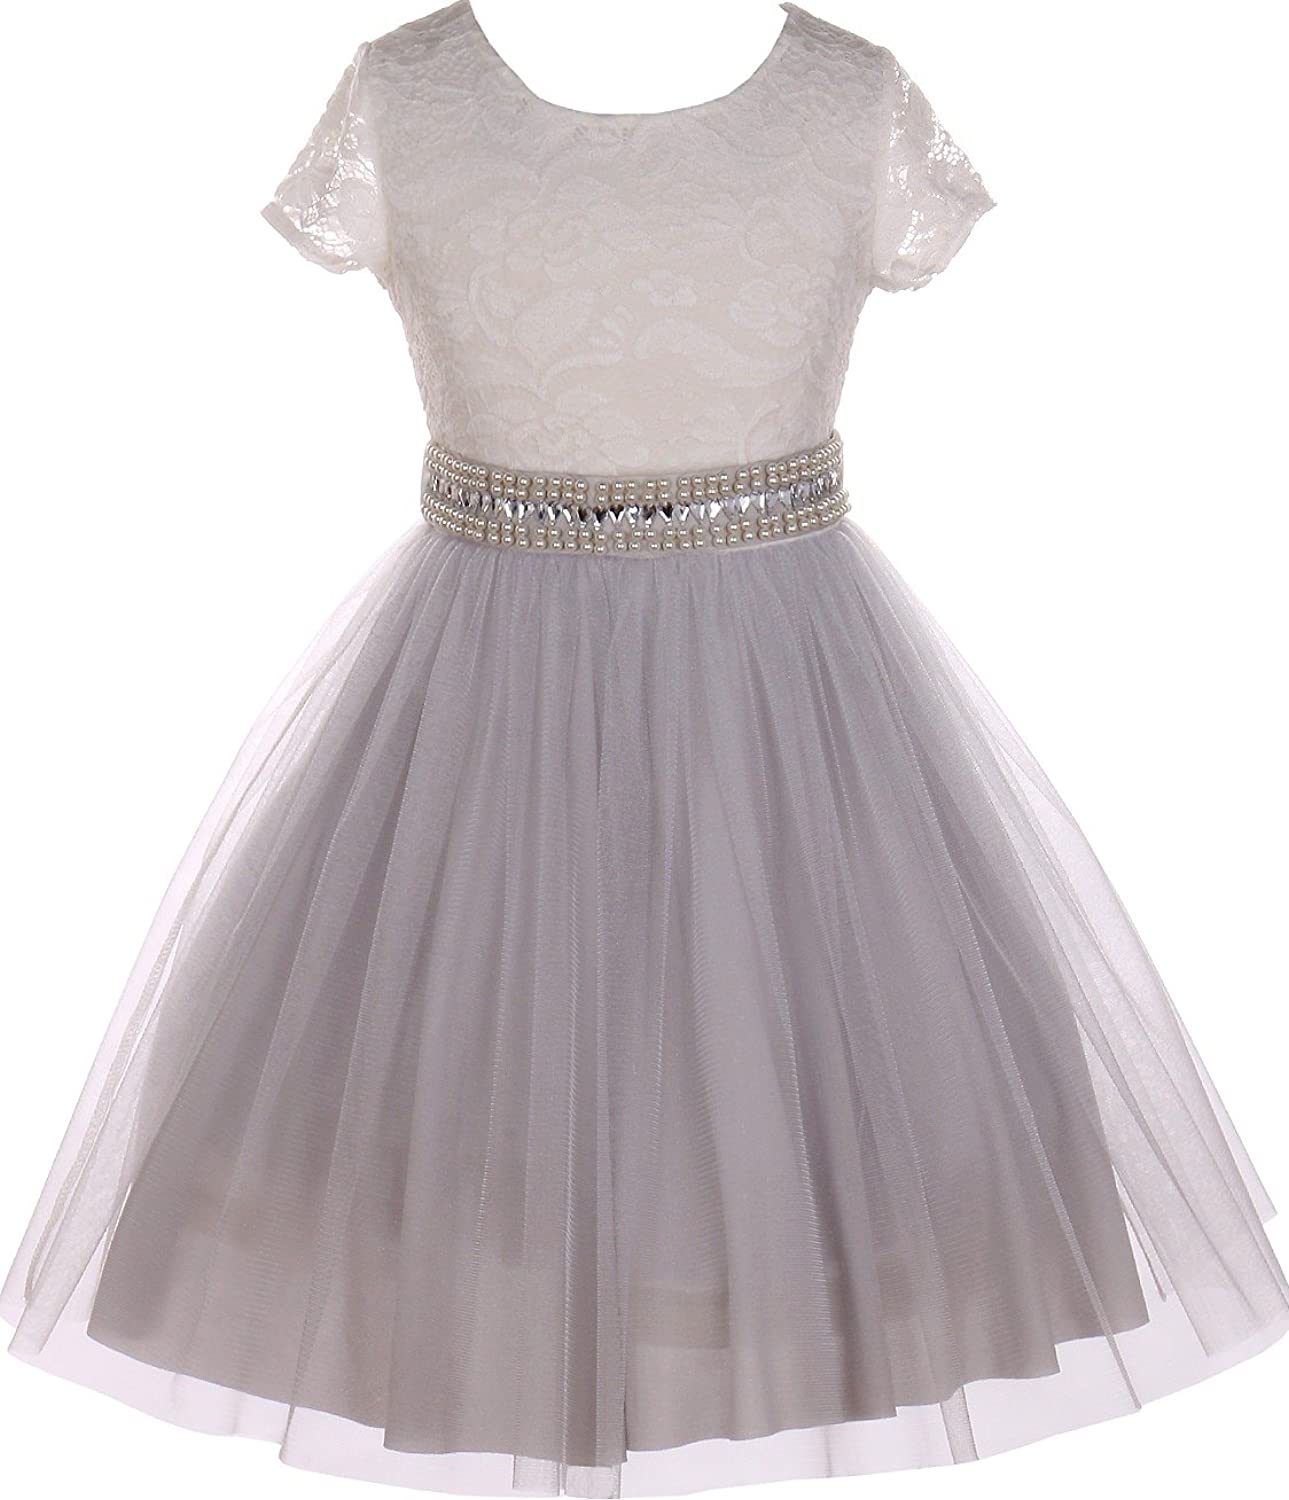 Flower Girl Dress Beautiful Overlay Shiny Mesh Skirt Special Occasion Easter Pageant